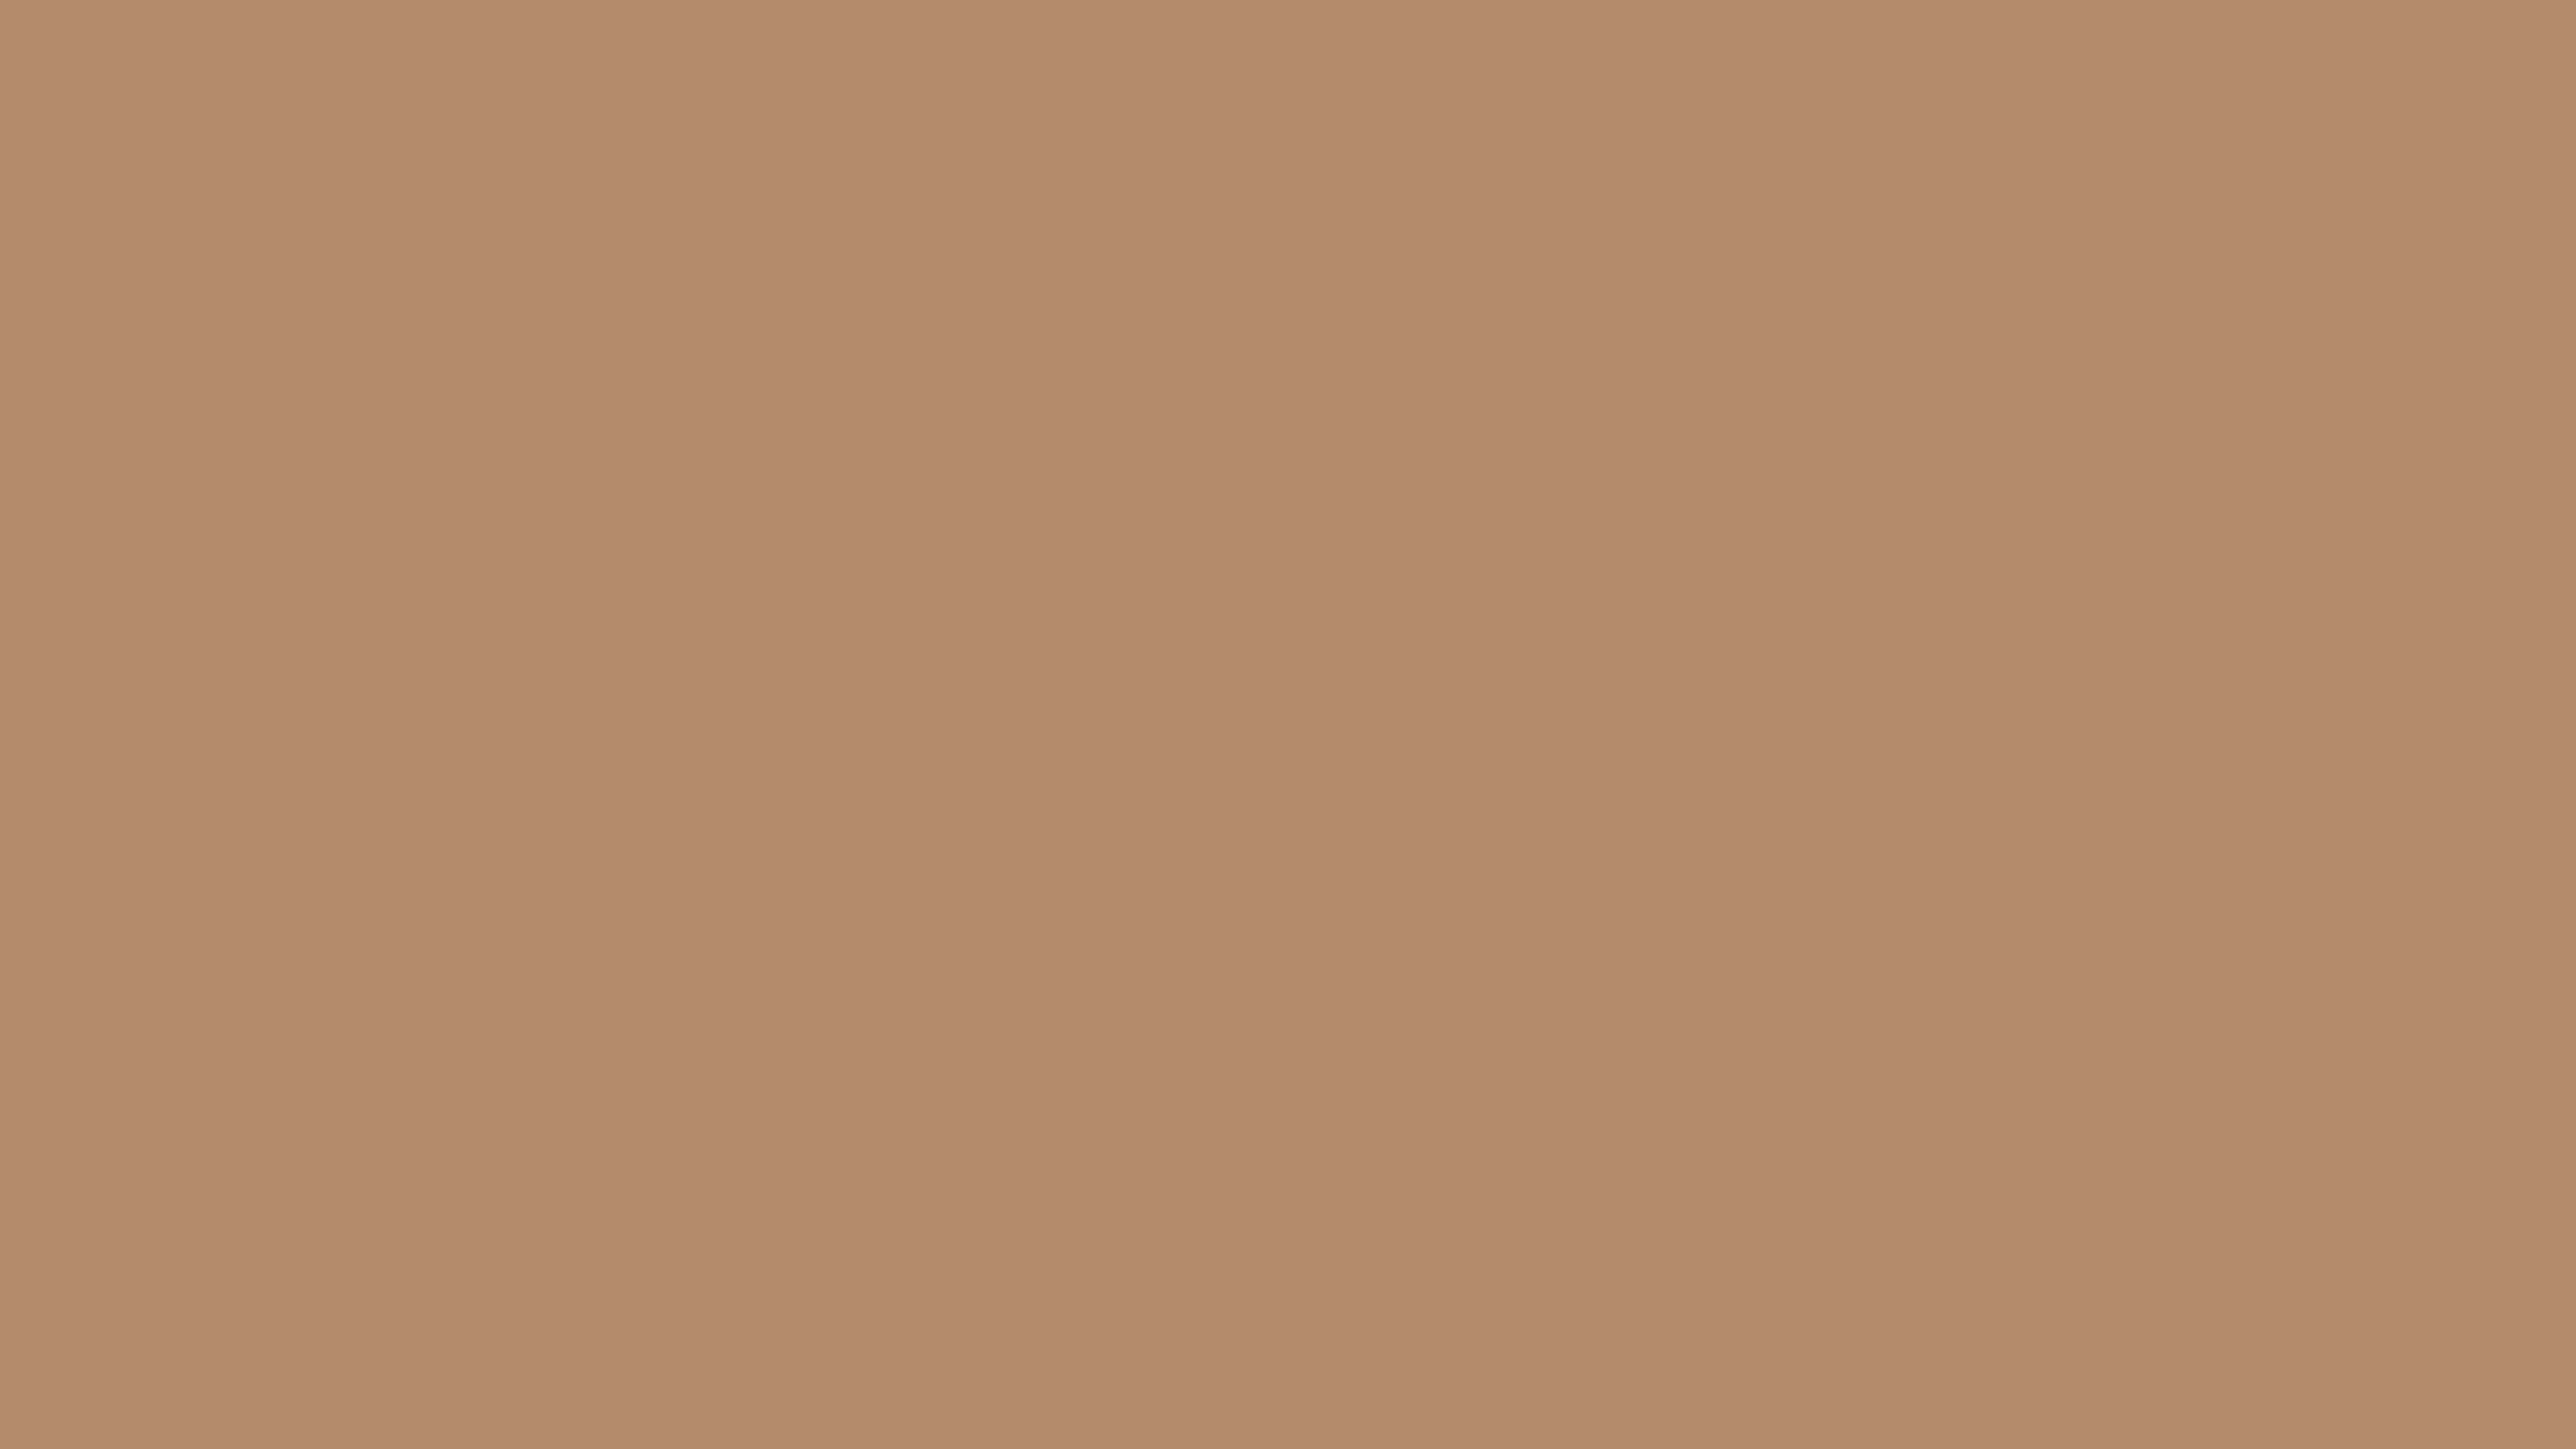 3840x2160 Light Taupe Solid Color Background